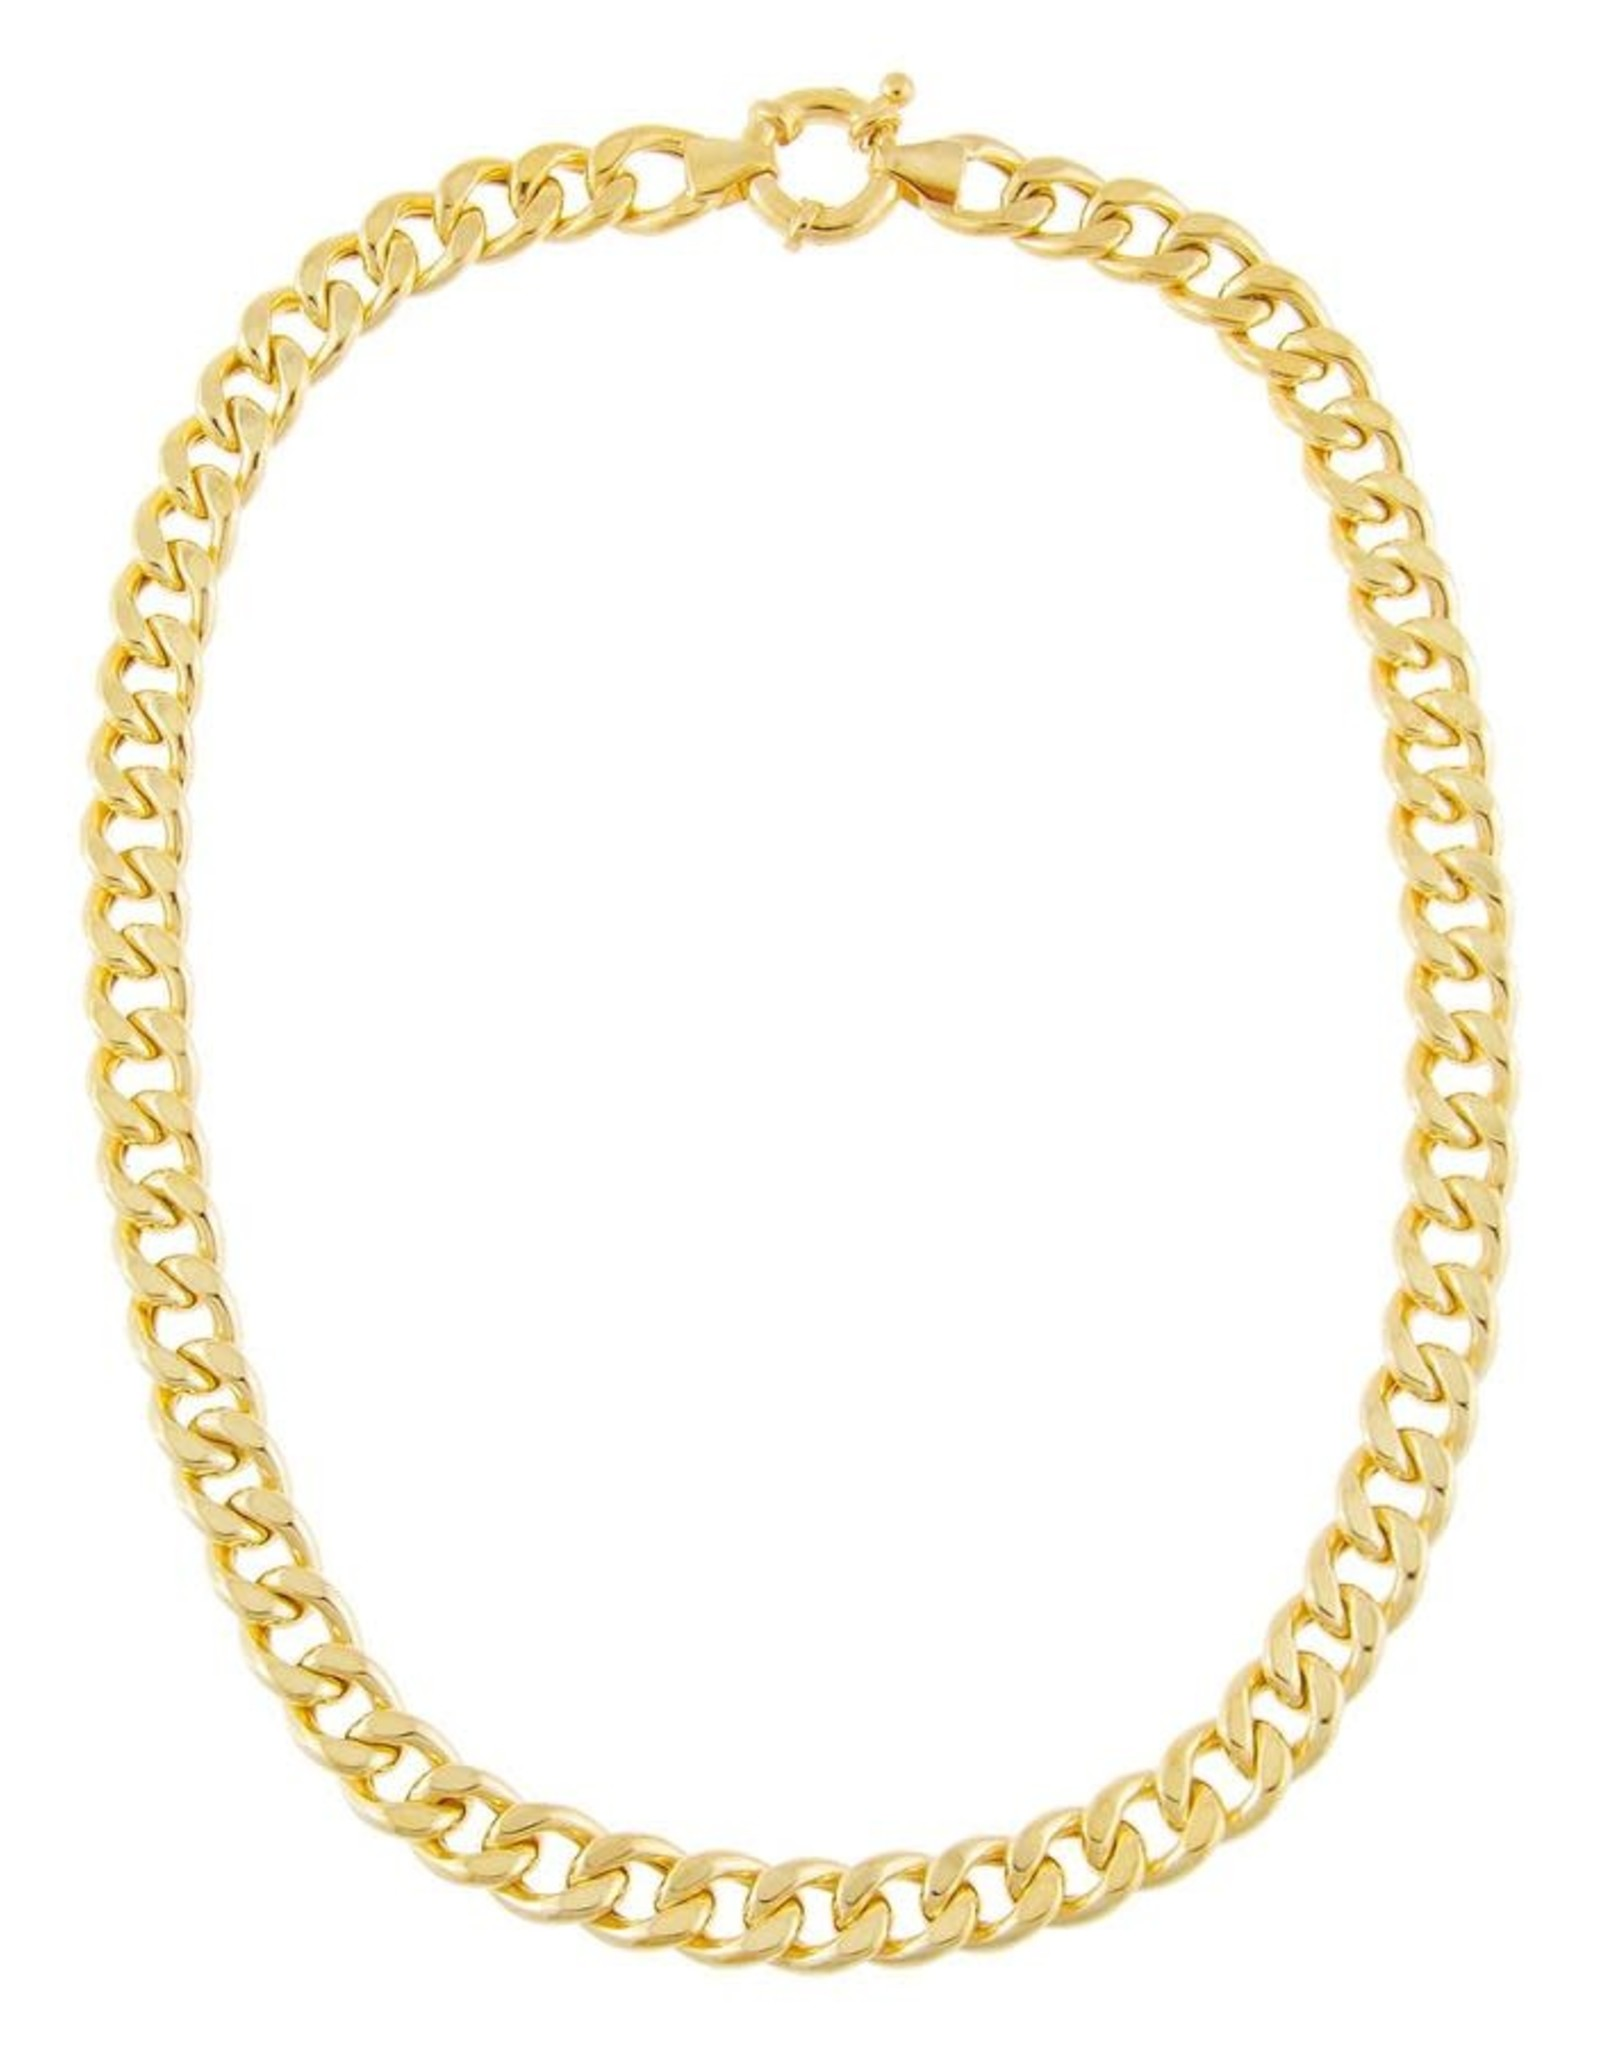 Adinas Medium Miami Curb Link Necklace